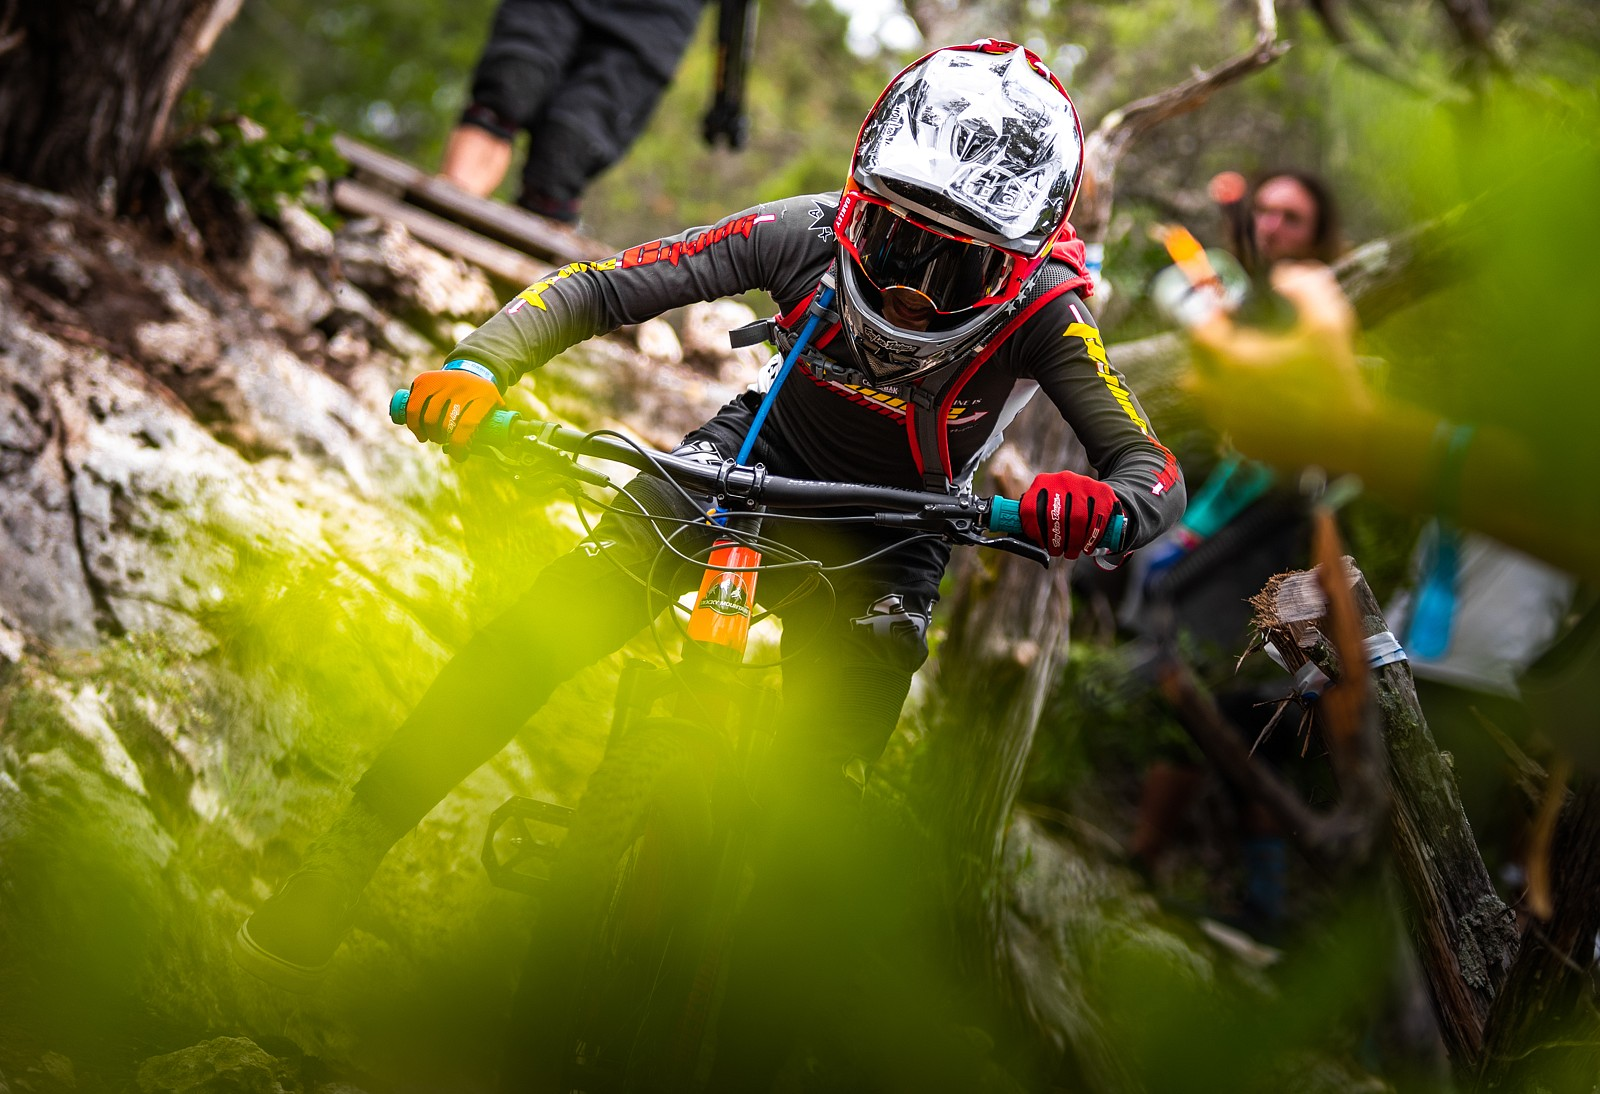 Grom Racing! - carbonmsc - Mountain Biking Pictures - Vital MTB